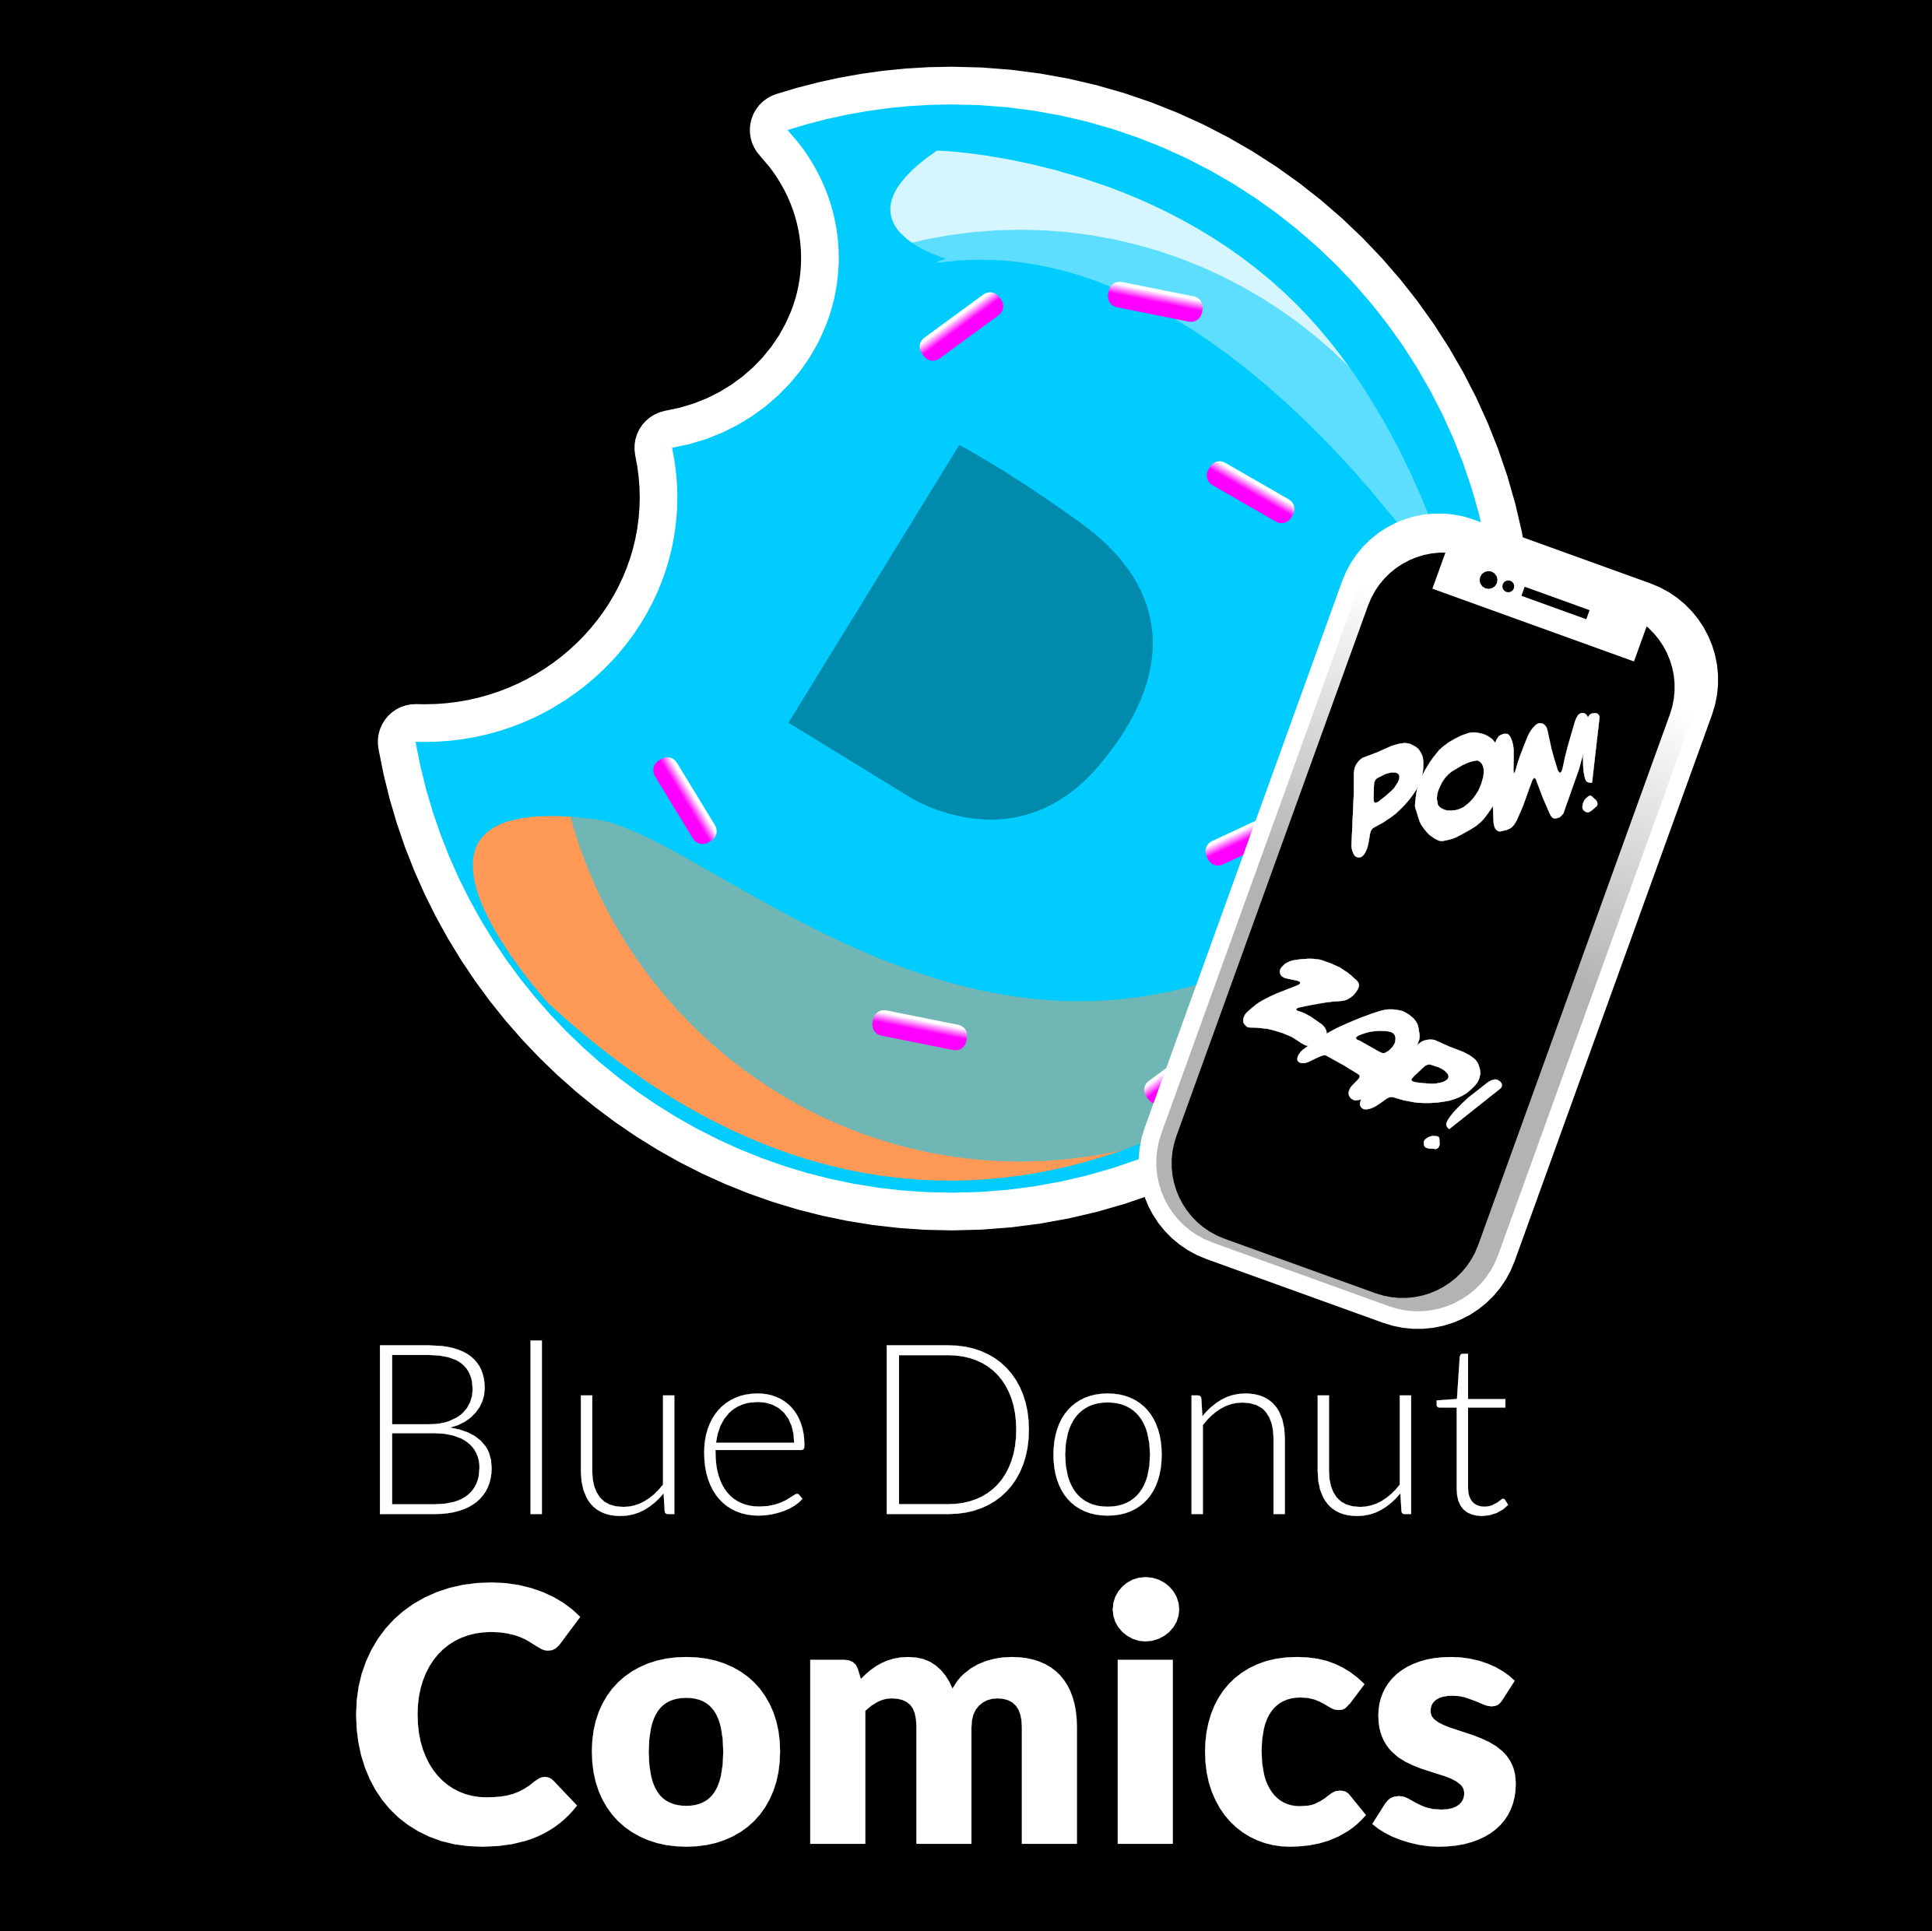 Blue Donut Studios creates and sells comics